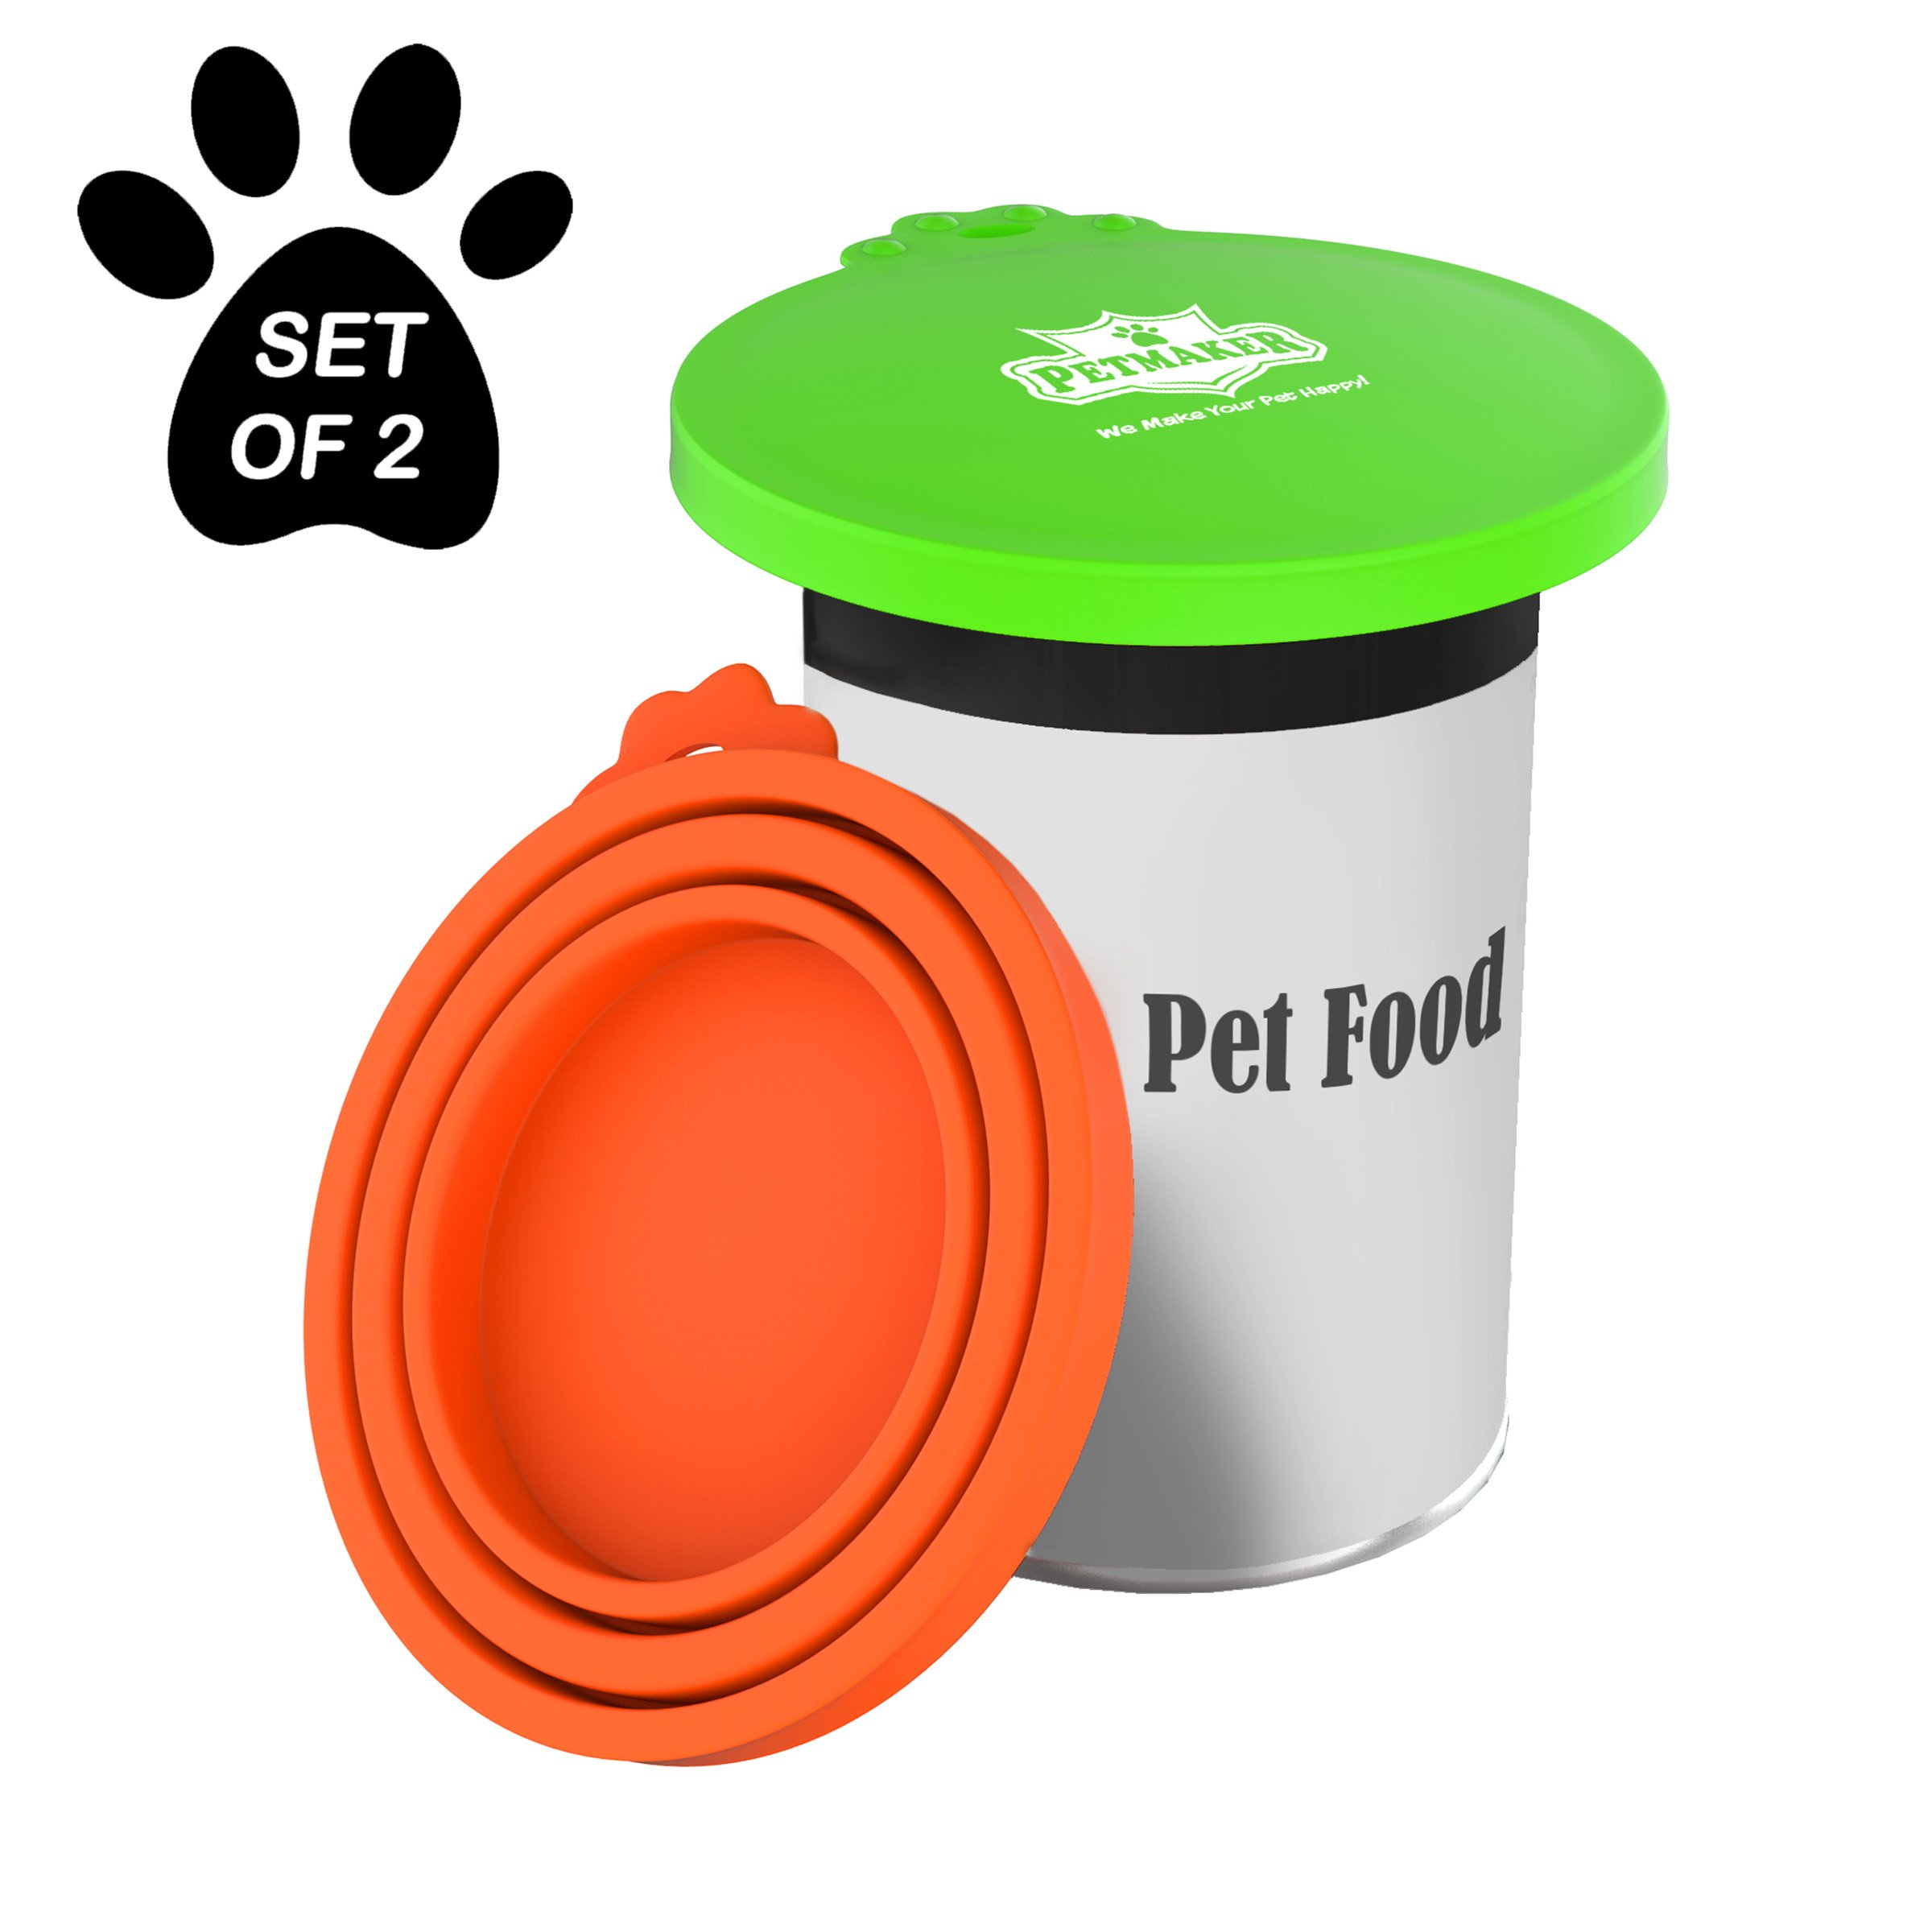 PETMAKER Silicone Pet Food Can Lids-Keep Opened Dog or Cat Food Portions Fresh-Fits 3oz, 5.5oz, 12oz, and More-Easy Storage, BPA-Free by (Set of 2)